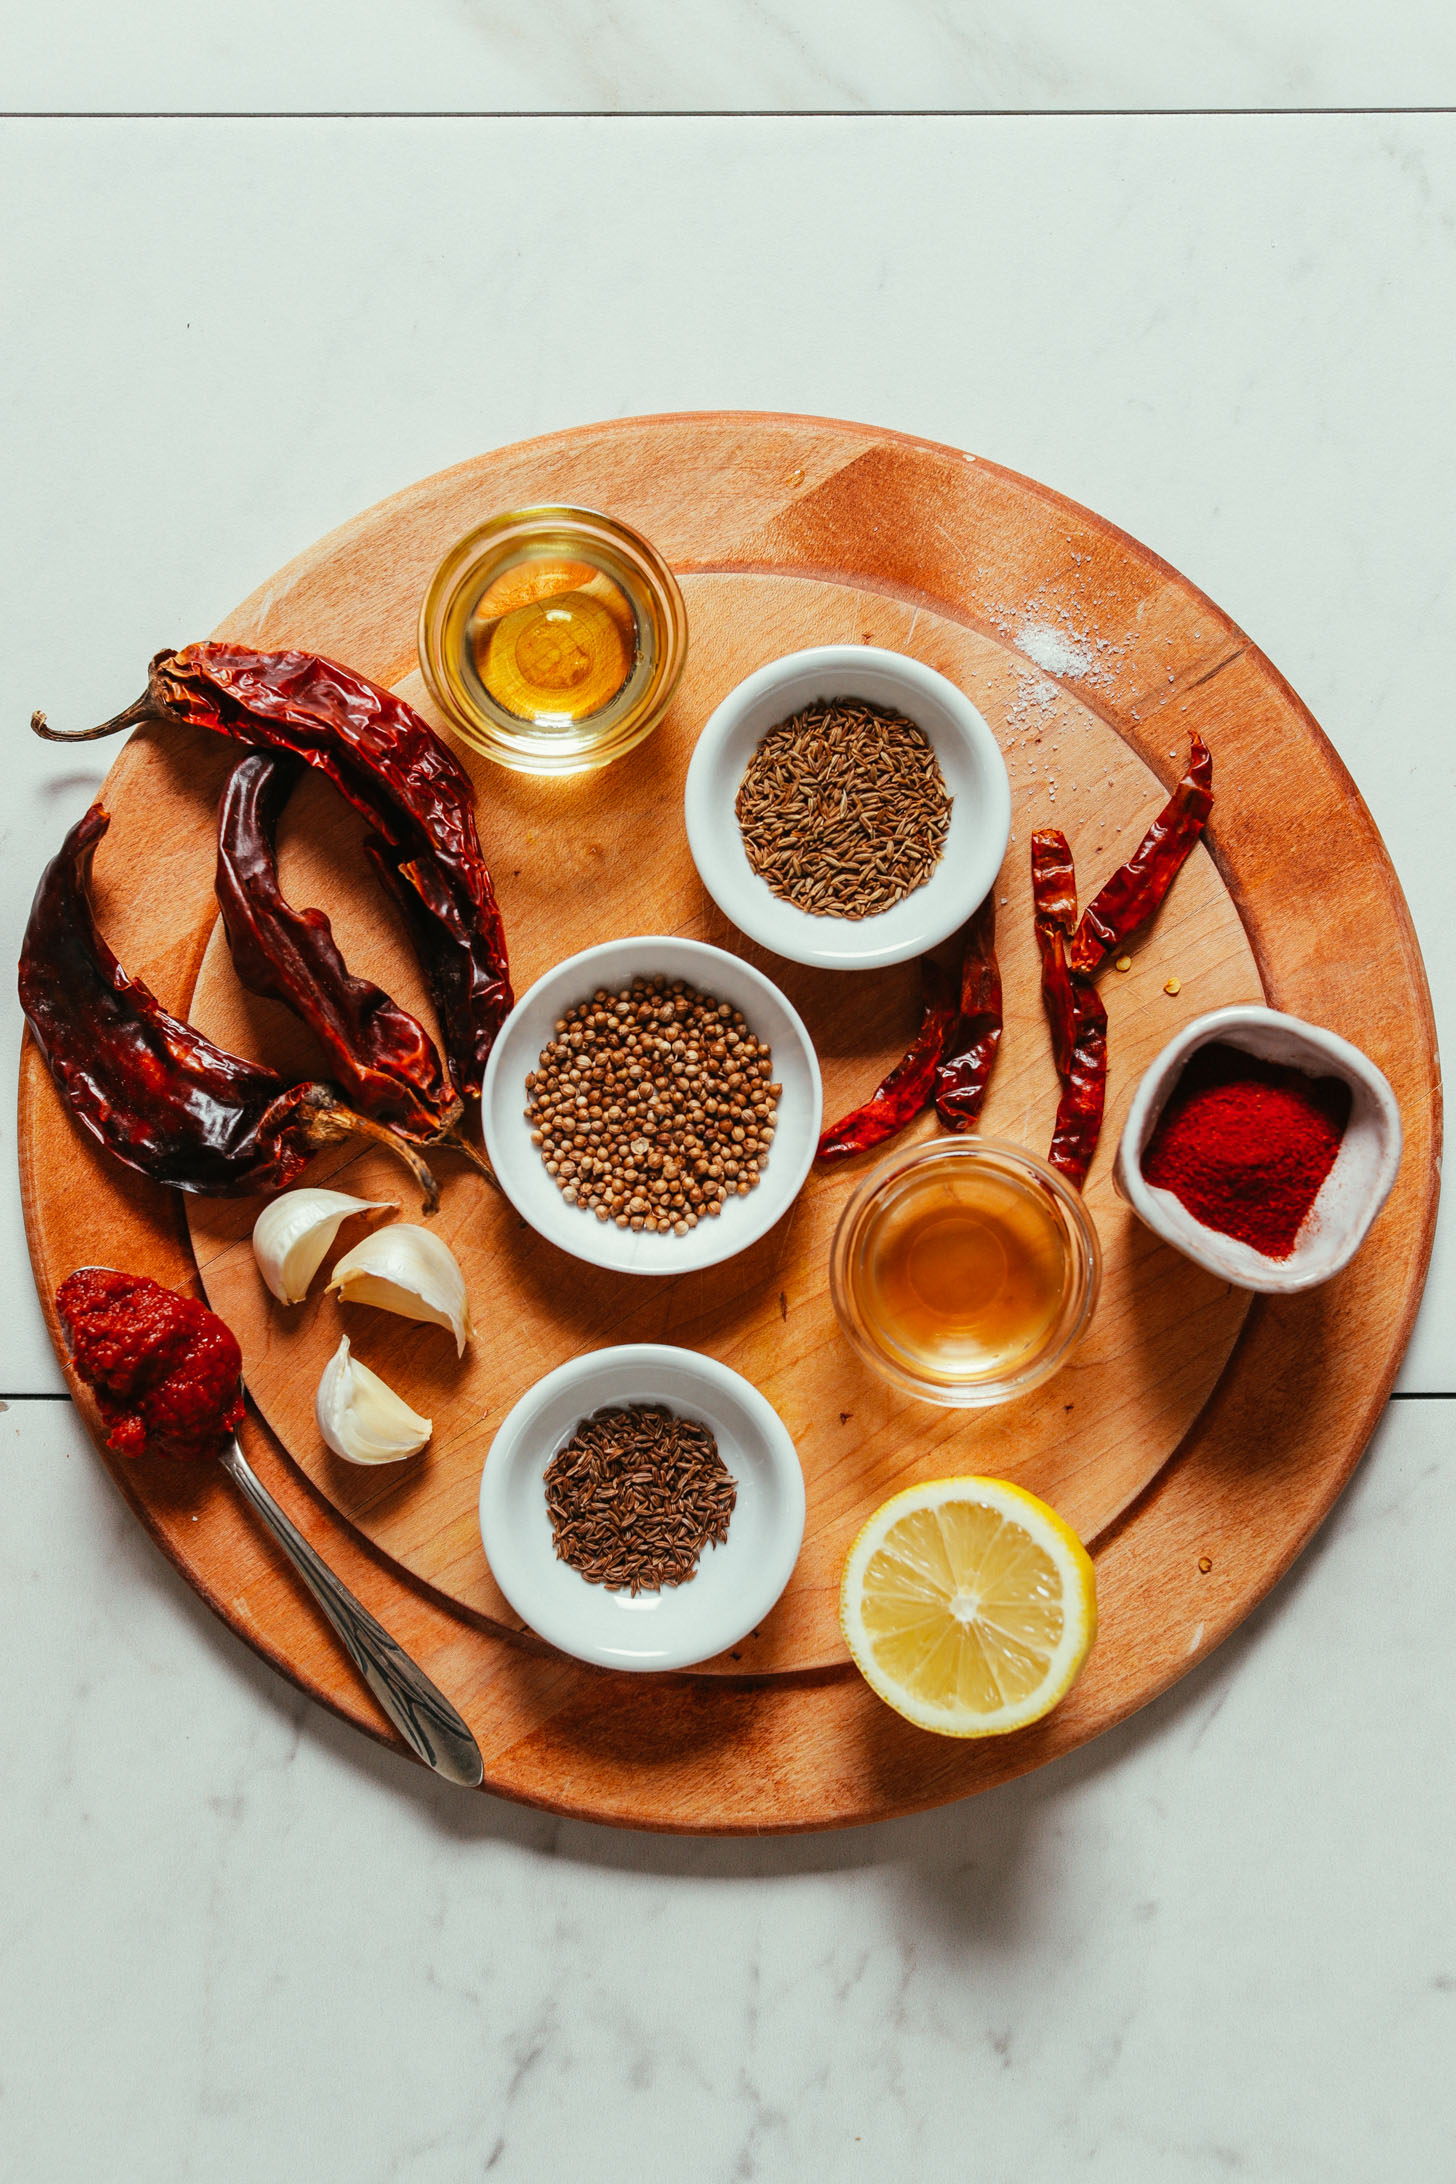 Overhead image of harissa ingredients on a cutting board, including dried chilies, smoked paprika, lemon, and garlic